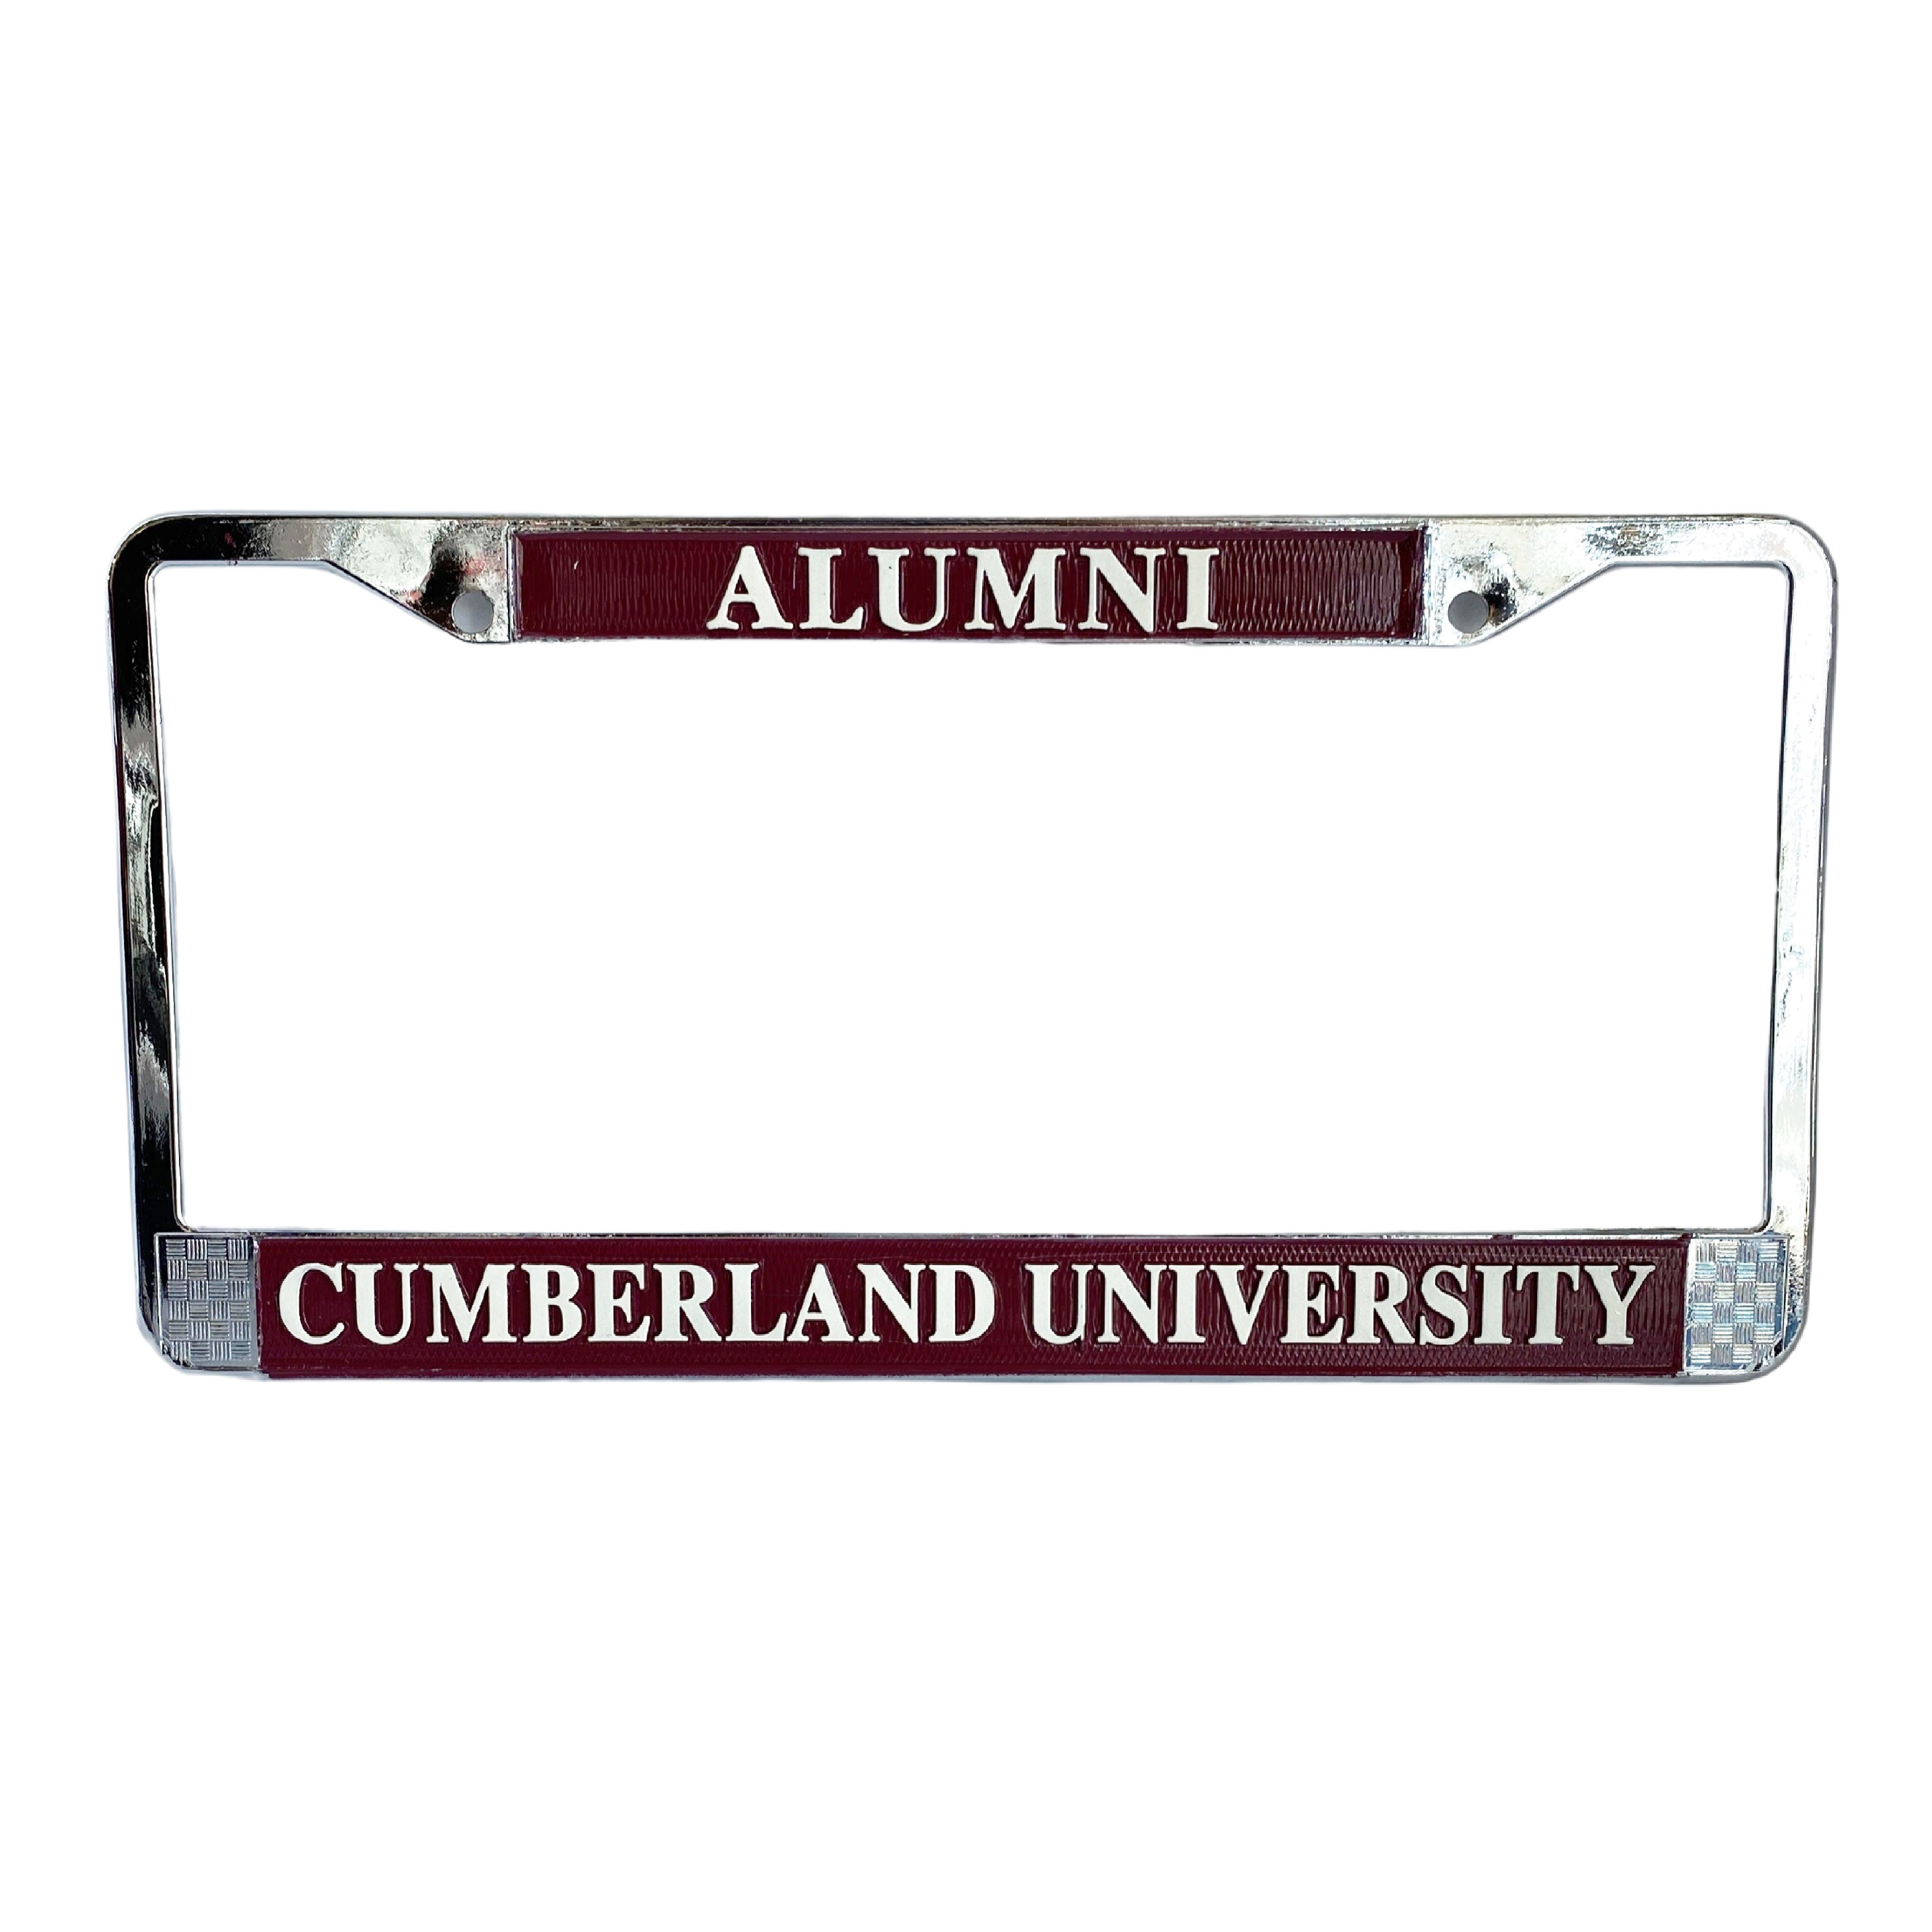 Cumberland University Alumni License Plate Frame